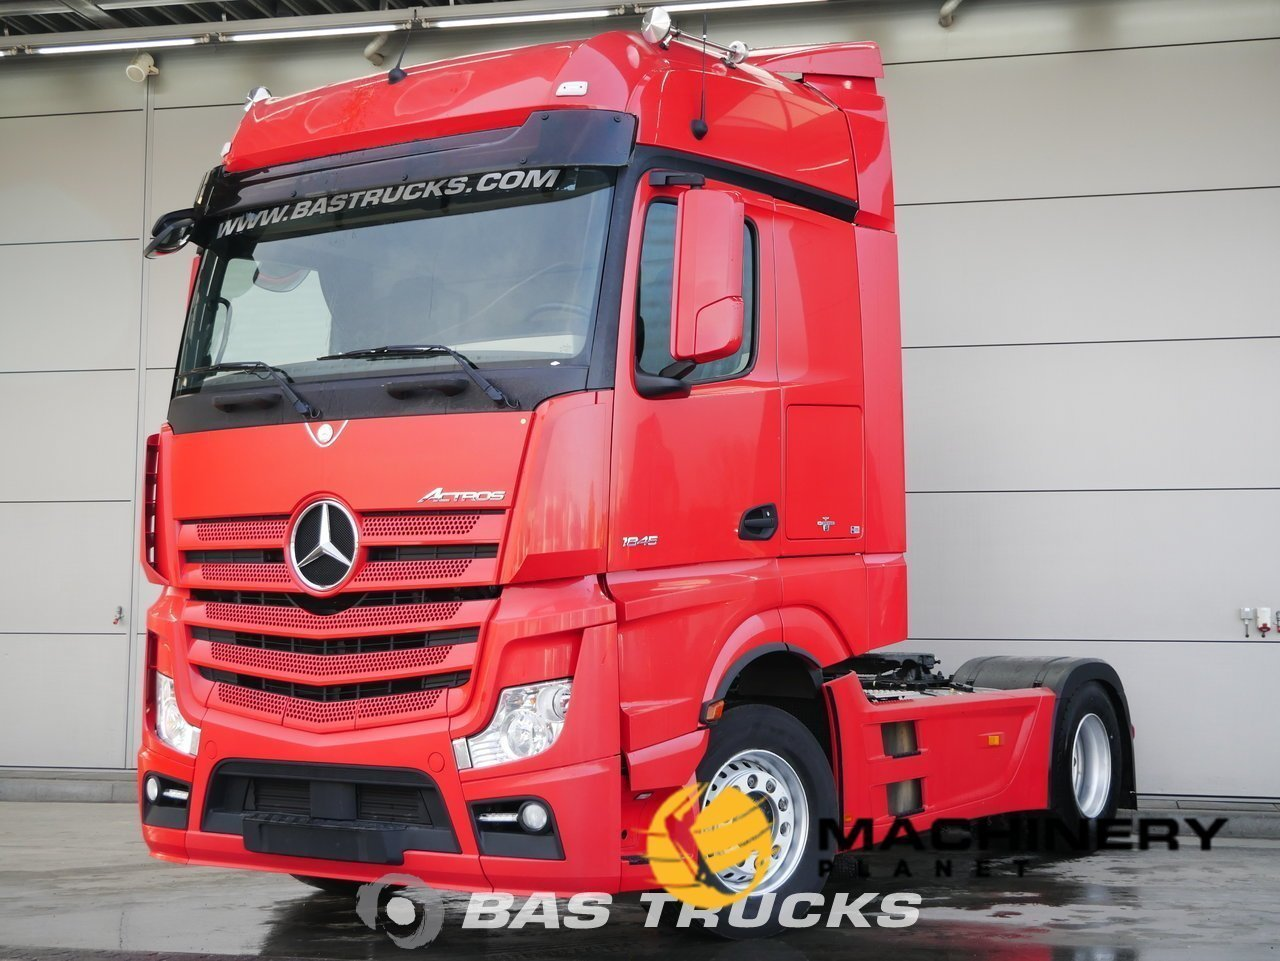 Used-Tractorhead-Mercedes-Actros-1845-LS-4X2-2014_145770_1-1554202143332_5ca33e1f512c0-1.jpg